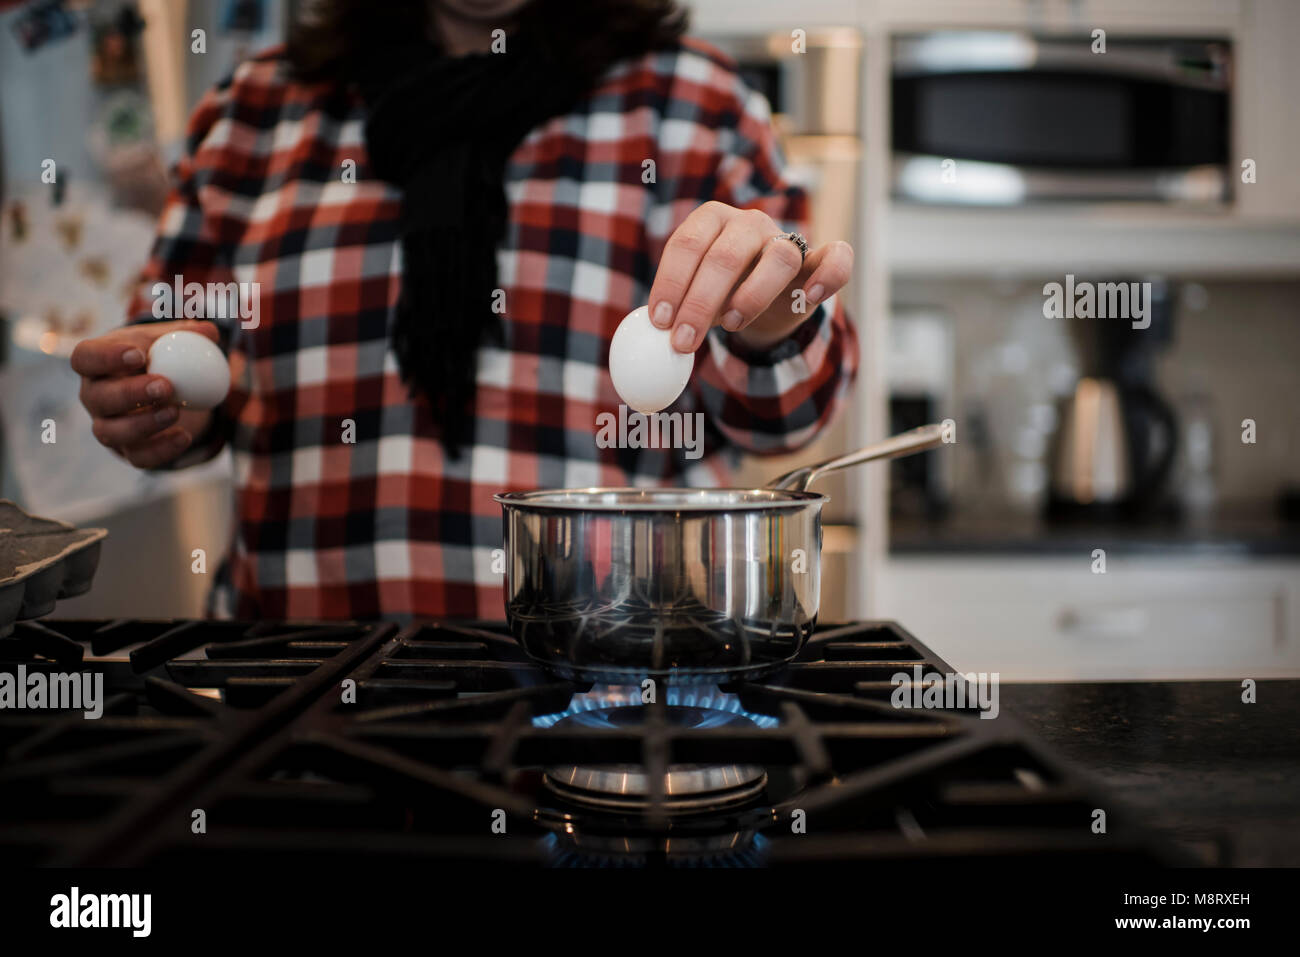 Midsection of woman putting eggs in container on illuminated stove - Stock Image